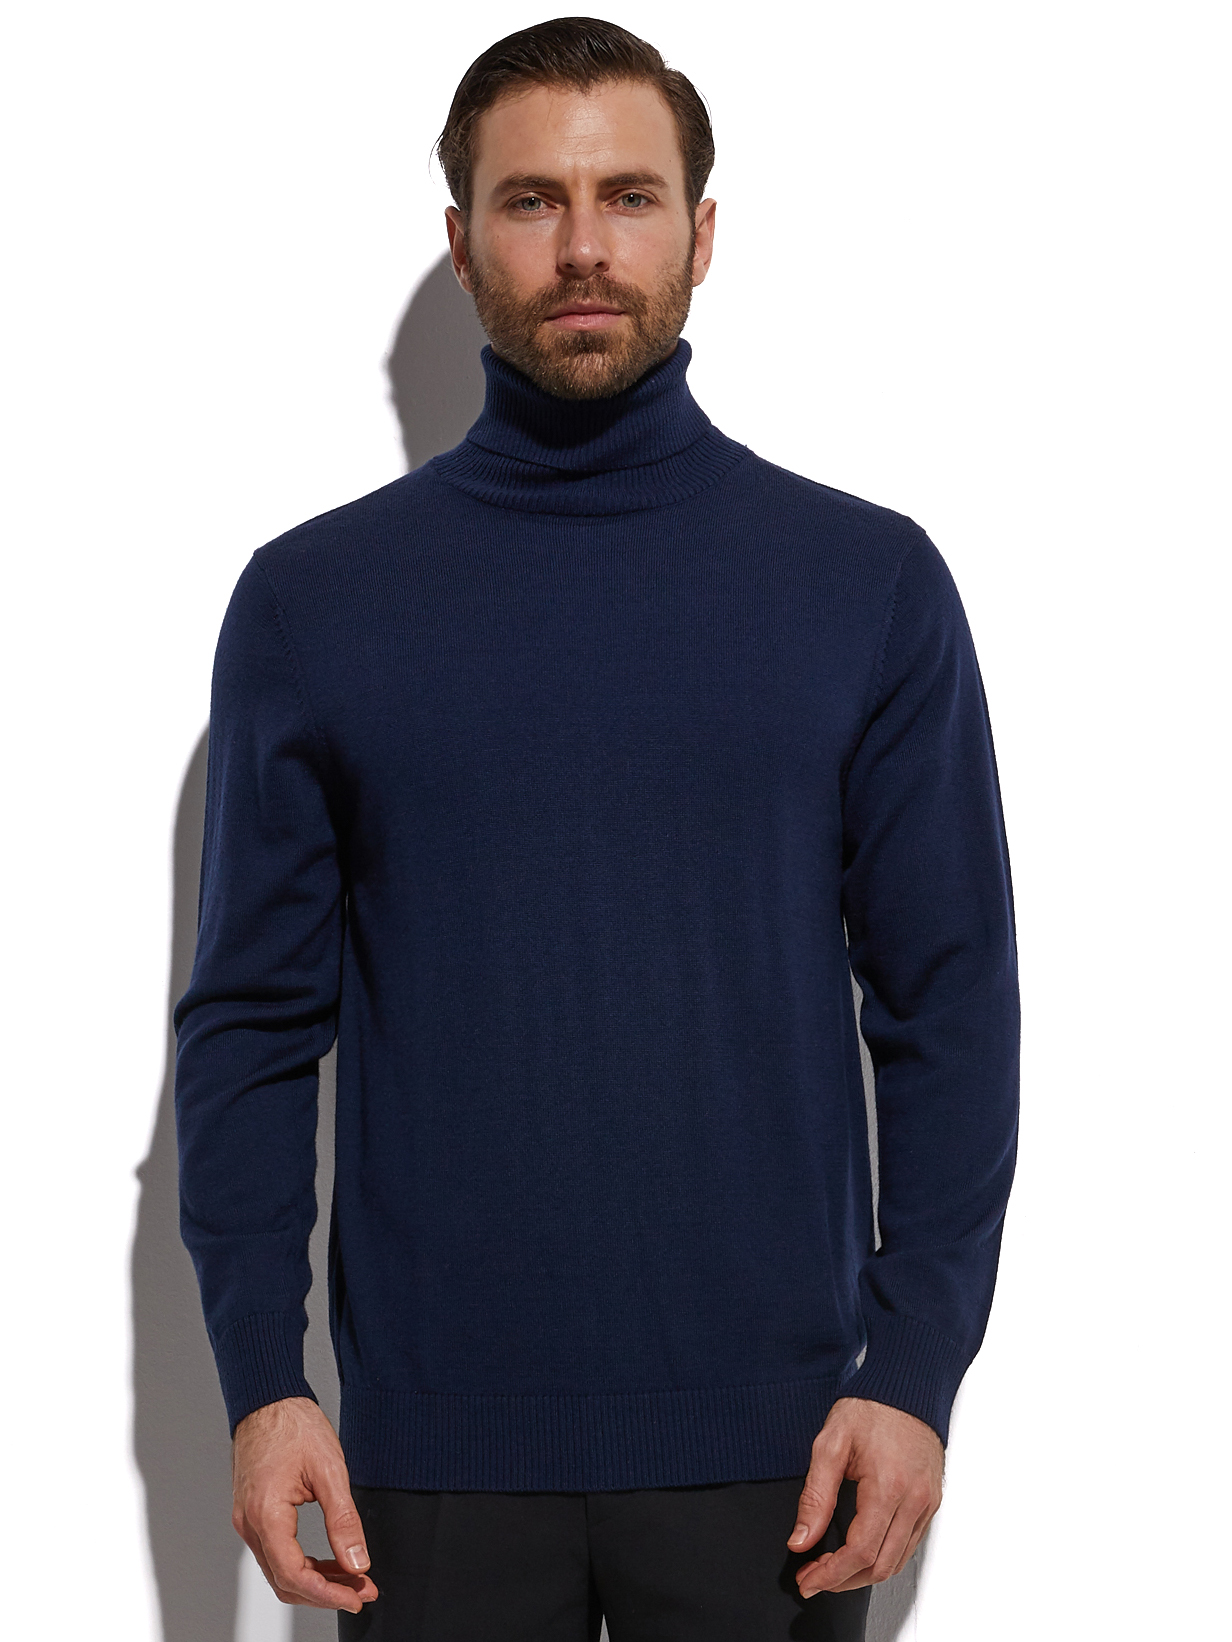 2020 Fashion Turtleneck Highly Selected 100% Extra Fine Merino Wool From Australia Autmun Winter Warm Sweaters Men Tutleneck